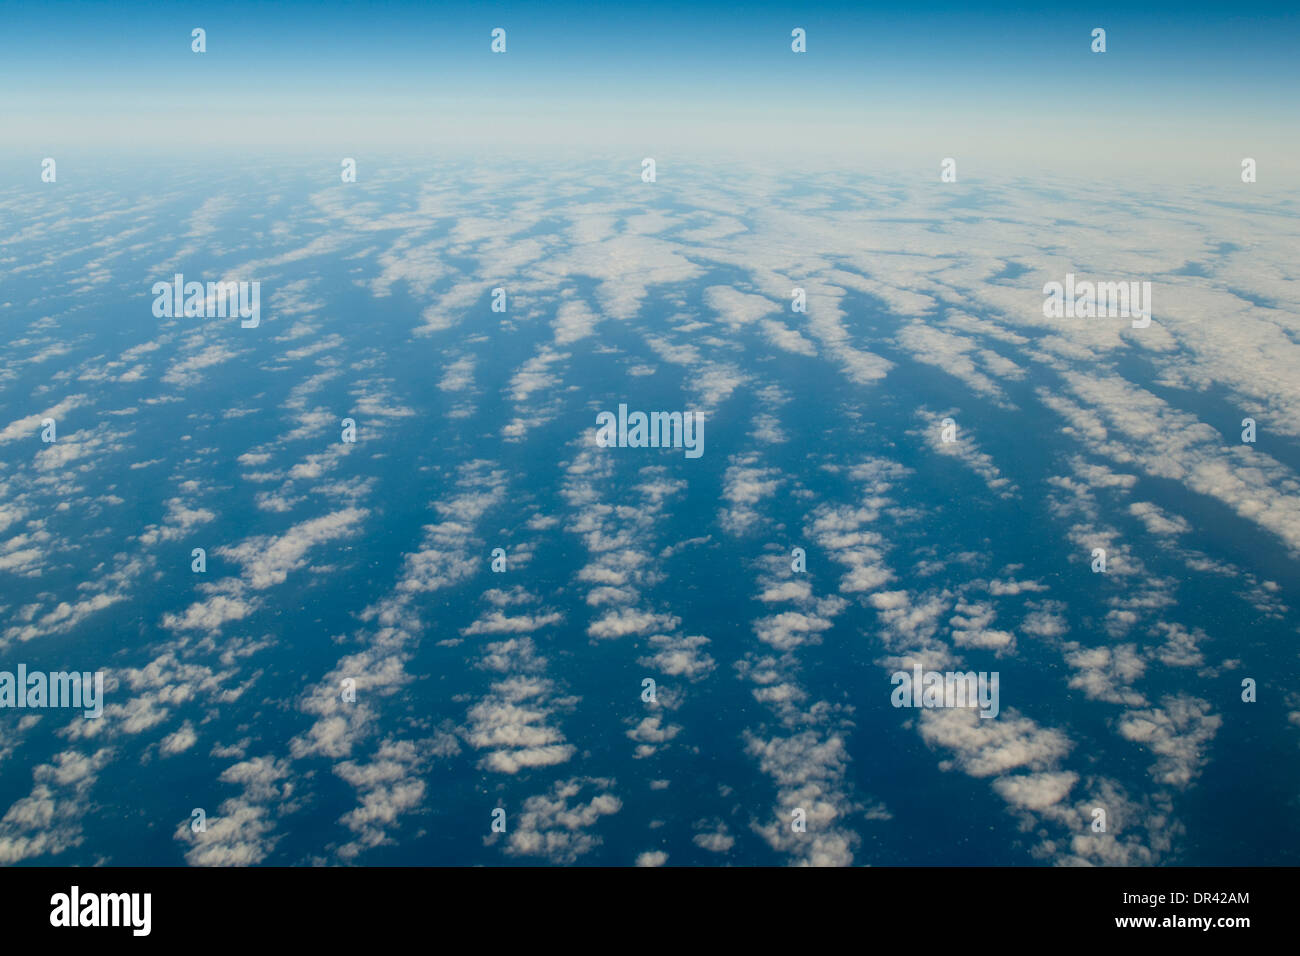 Stratus clouds over the Pacific Ocean Stock Photo